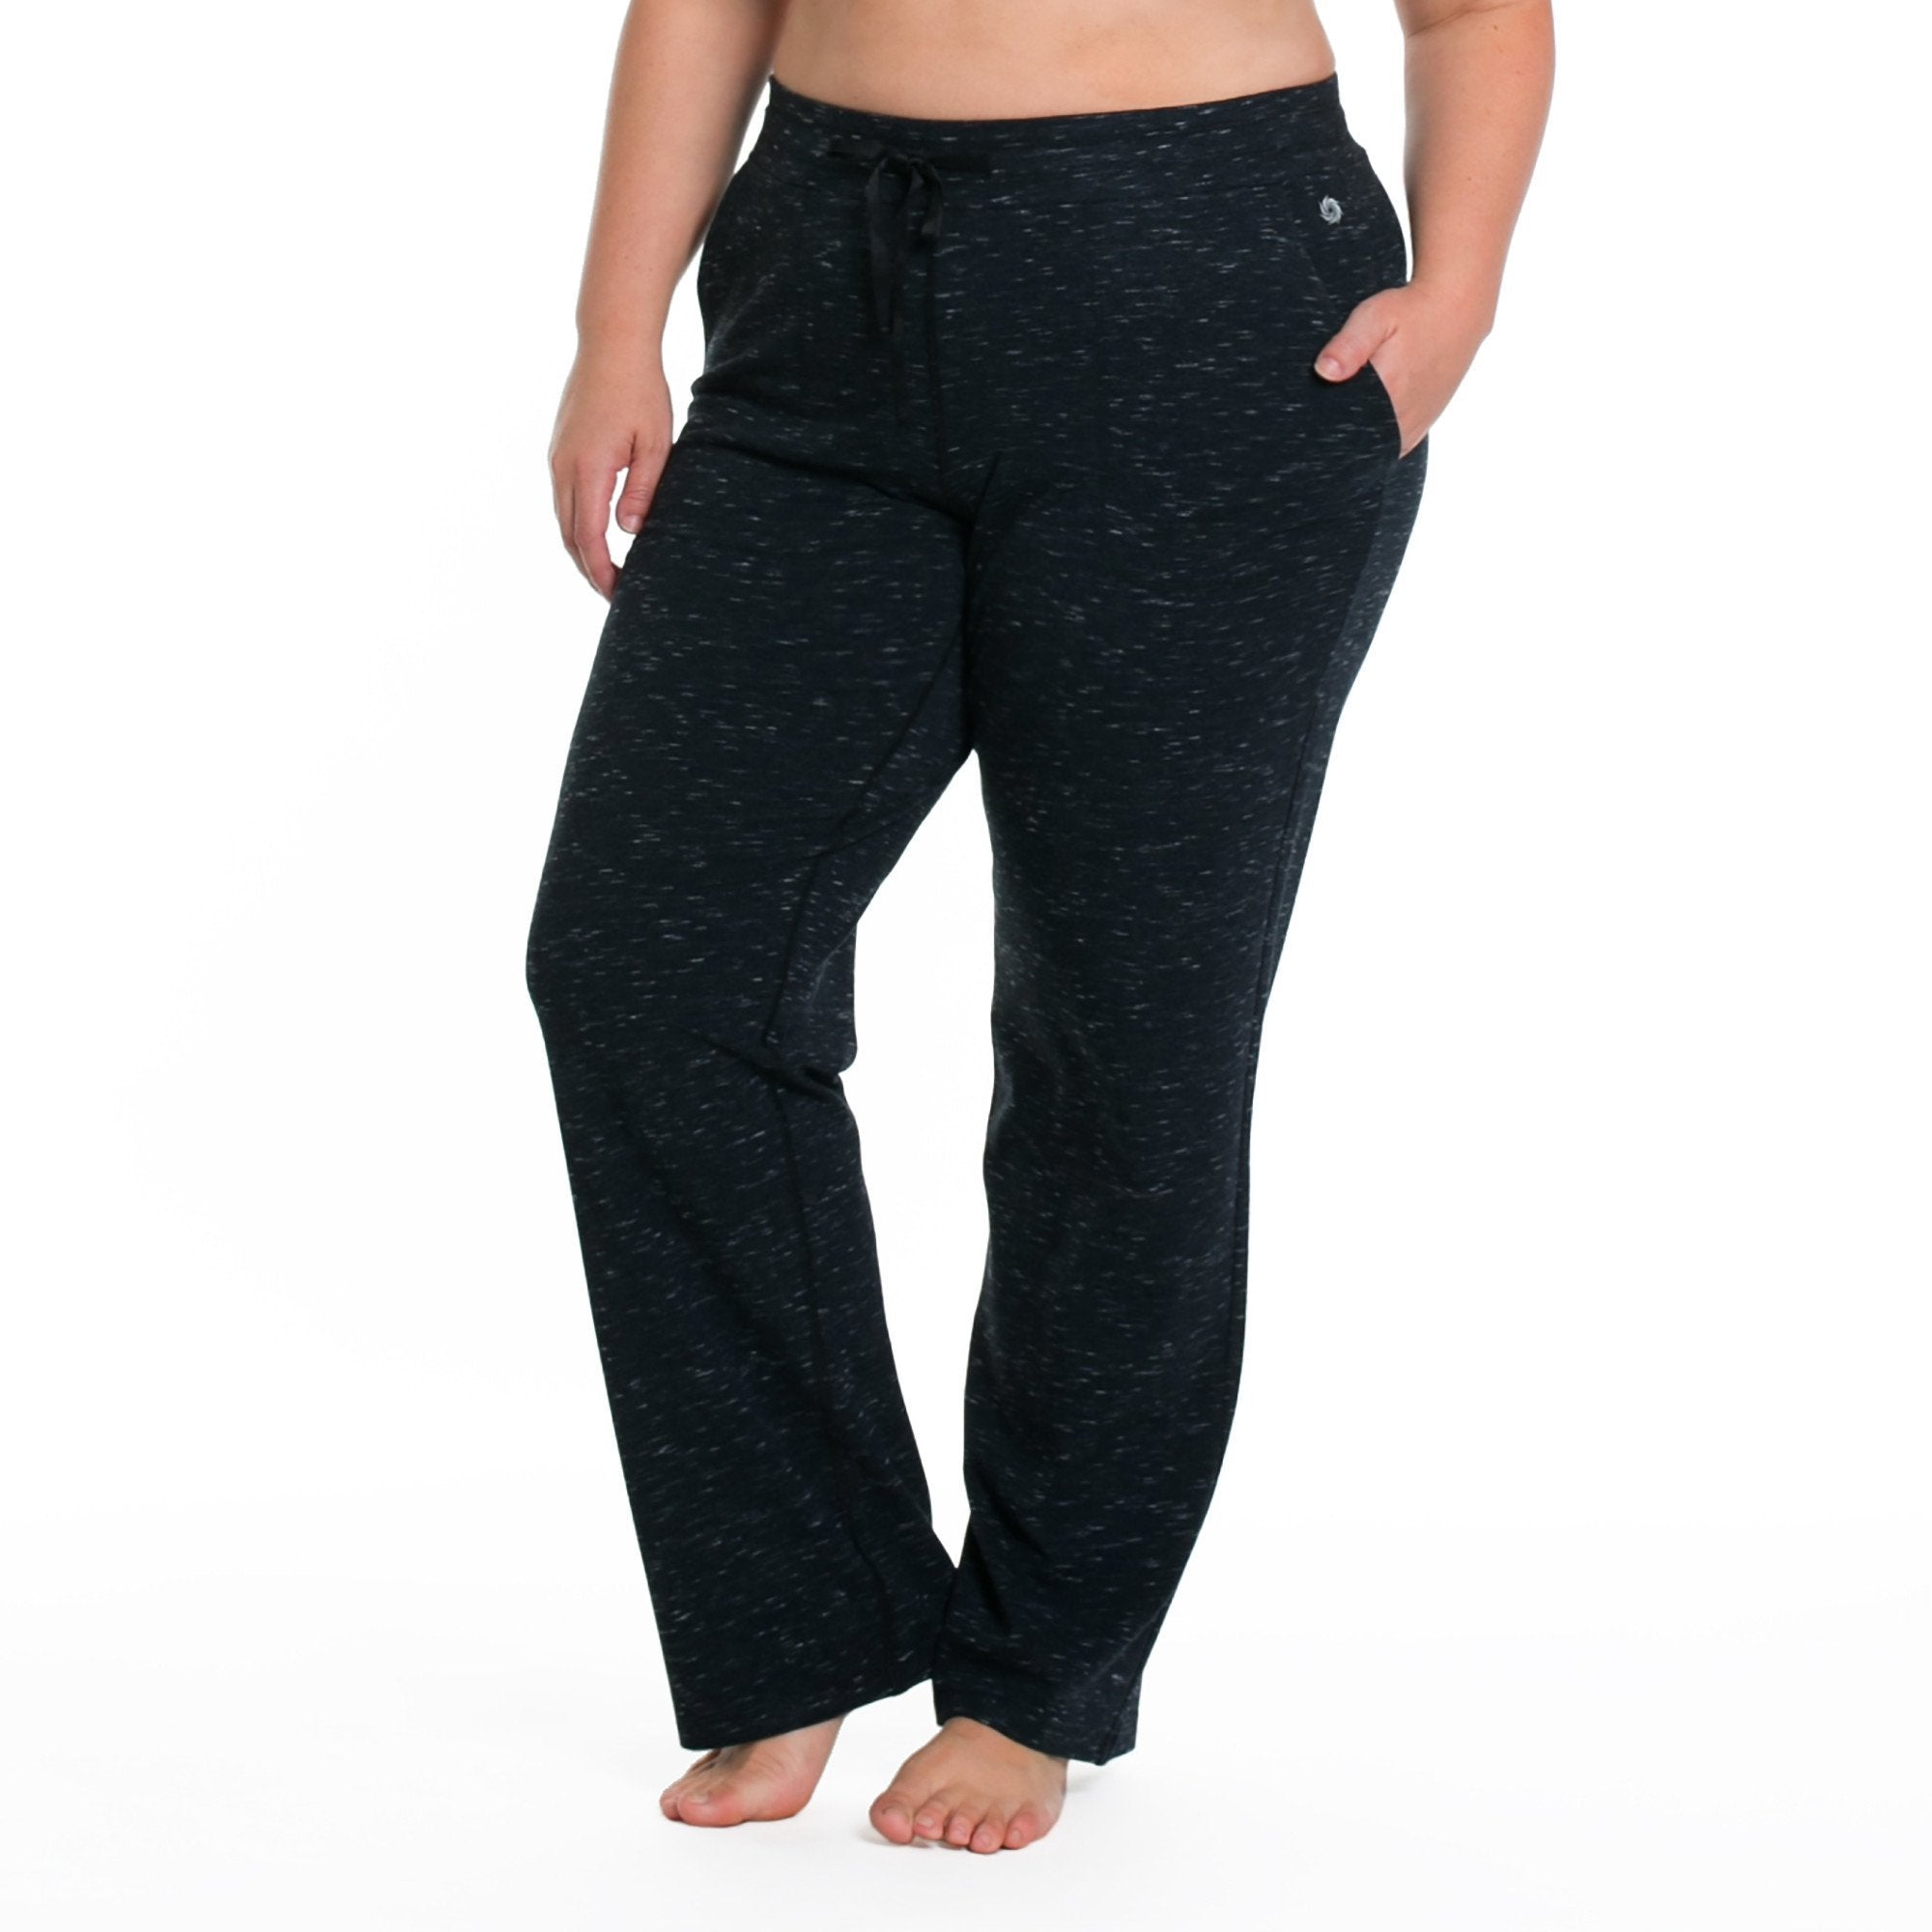 Karina Pants - Rainbeau Curves, 14/16 / Marled Midnight, activewear, athleisure, fitness, workout, gym, performance, womens, ladies, plus size, curvy, full figured, spandex, cotton, polyester - 3